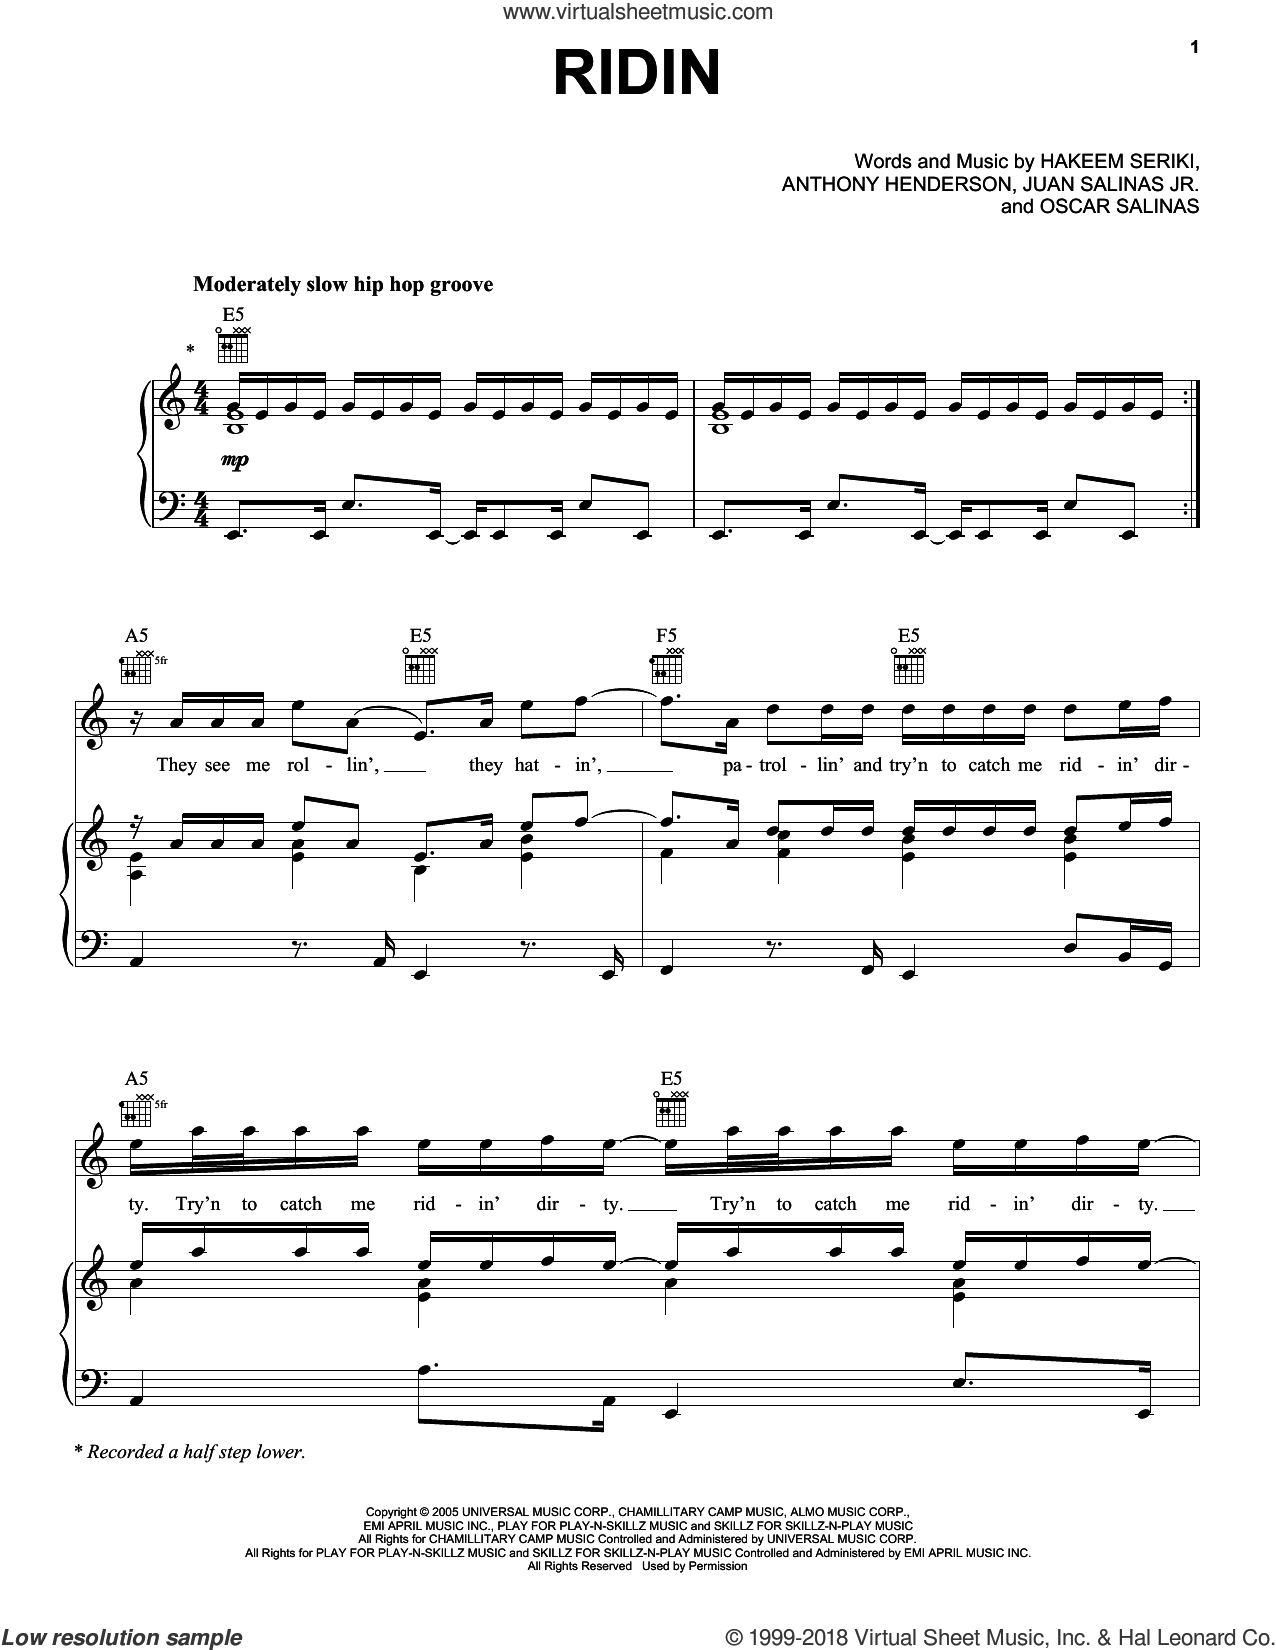 Ridin sheet music for voice, piano or guitar by Chamillionaire, Anthony Henderson, Hakeem Seriki, Juan Salinas Jr. and Oscar Salinas, intermediate